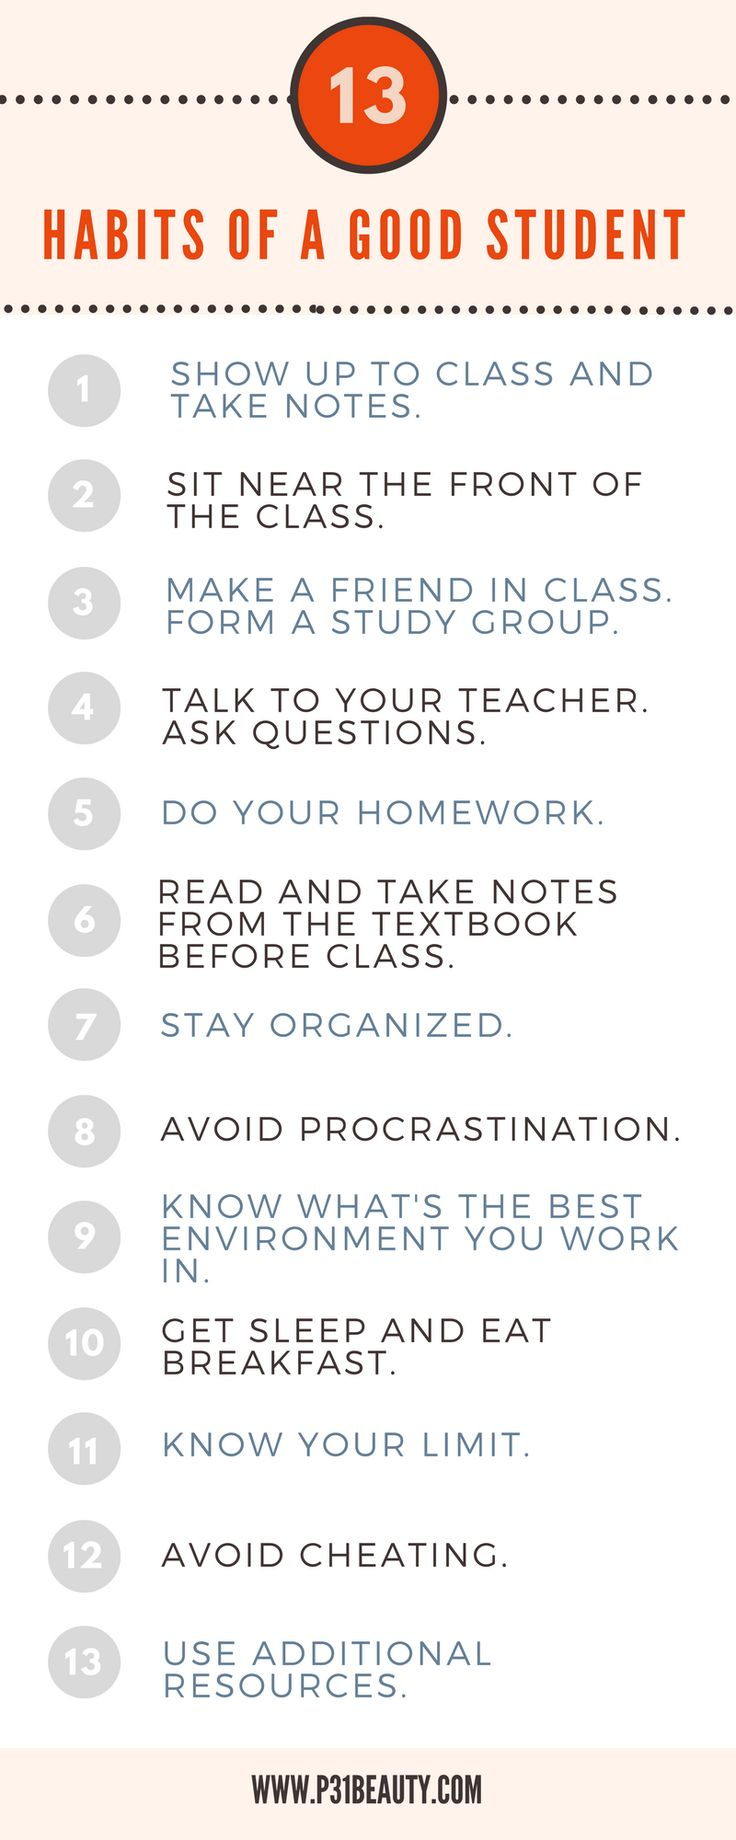 13 Habits of a Good Student!  Read the post: The Ultimate Guide to Getting Good Grades in School This Year. Learn how to form good study habits, take notes, and study effectively before test day. #study #college #highschool #studytips